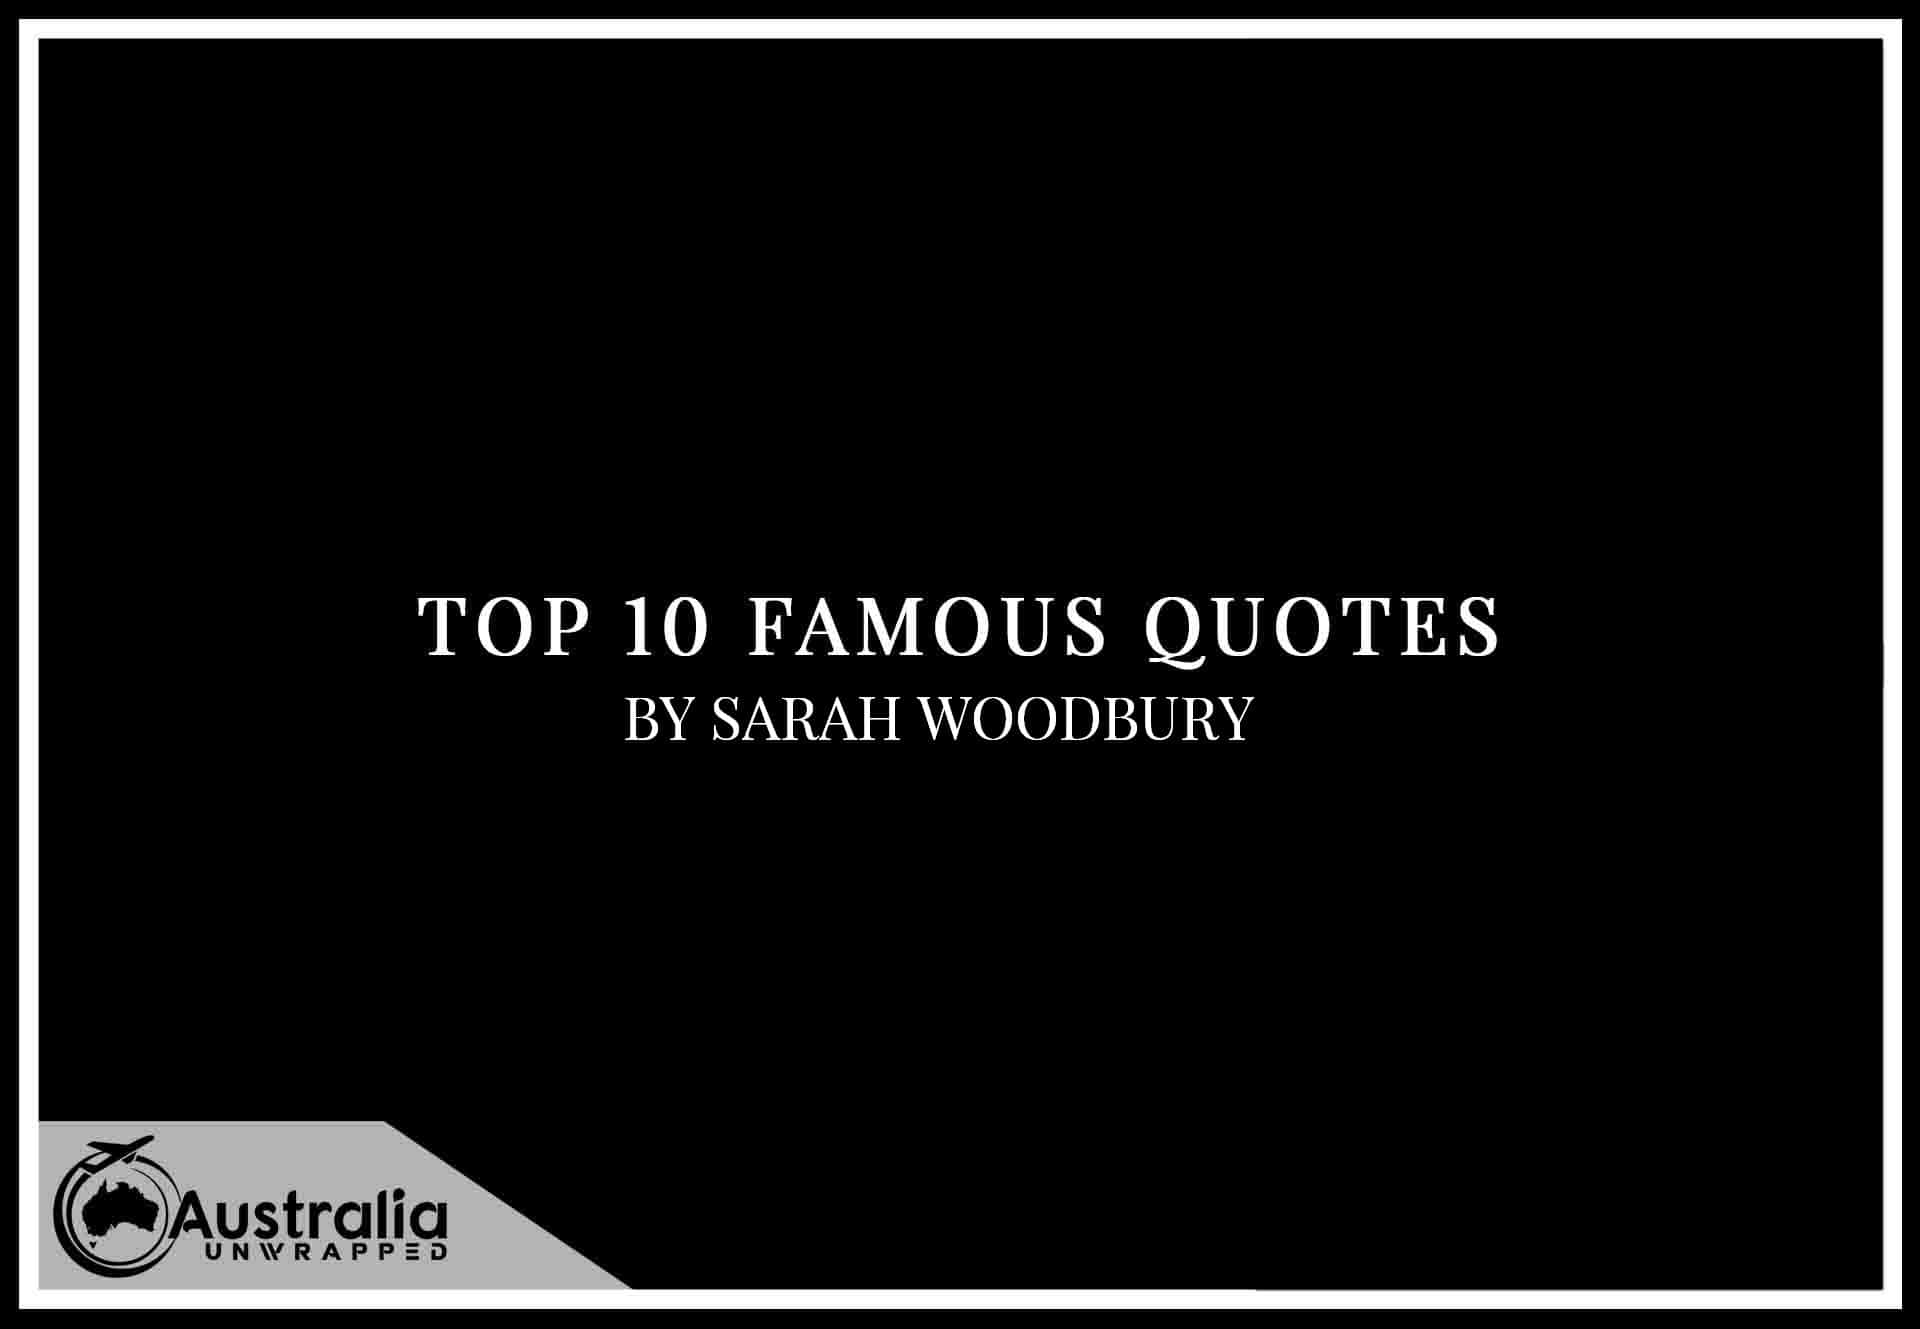 Top 10 Famous Quotes by Author Sarah Woodbury